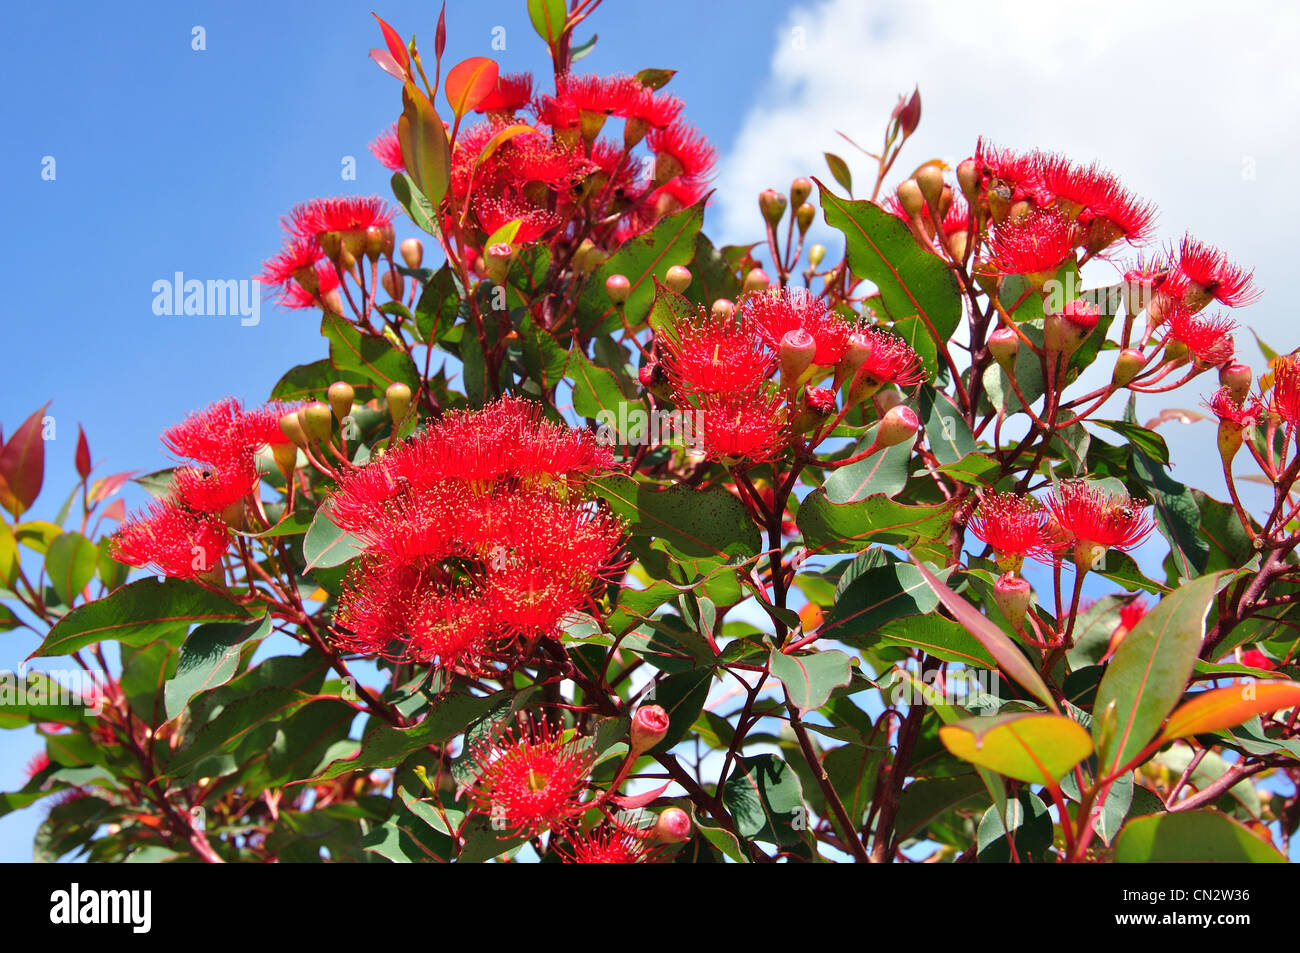 Blue Flowers Australia Blue Mountains Flower Australia Stock Photos And Blue